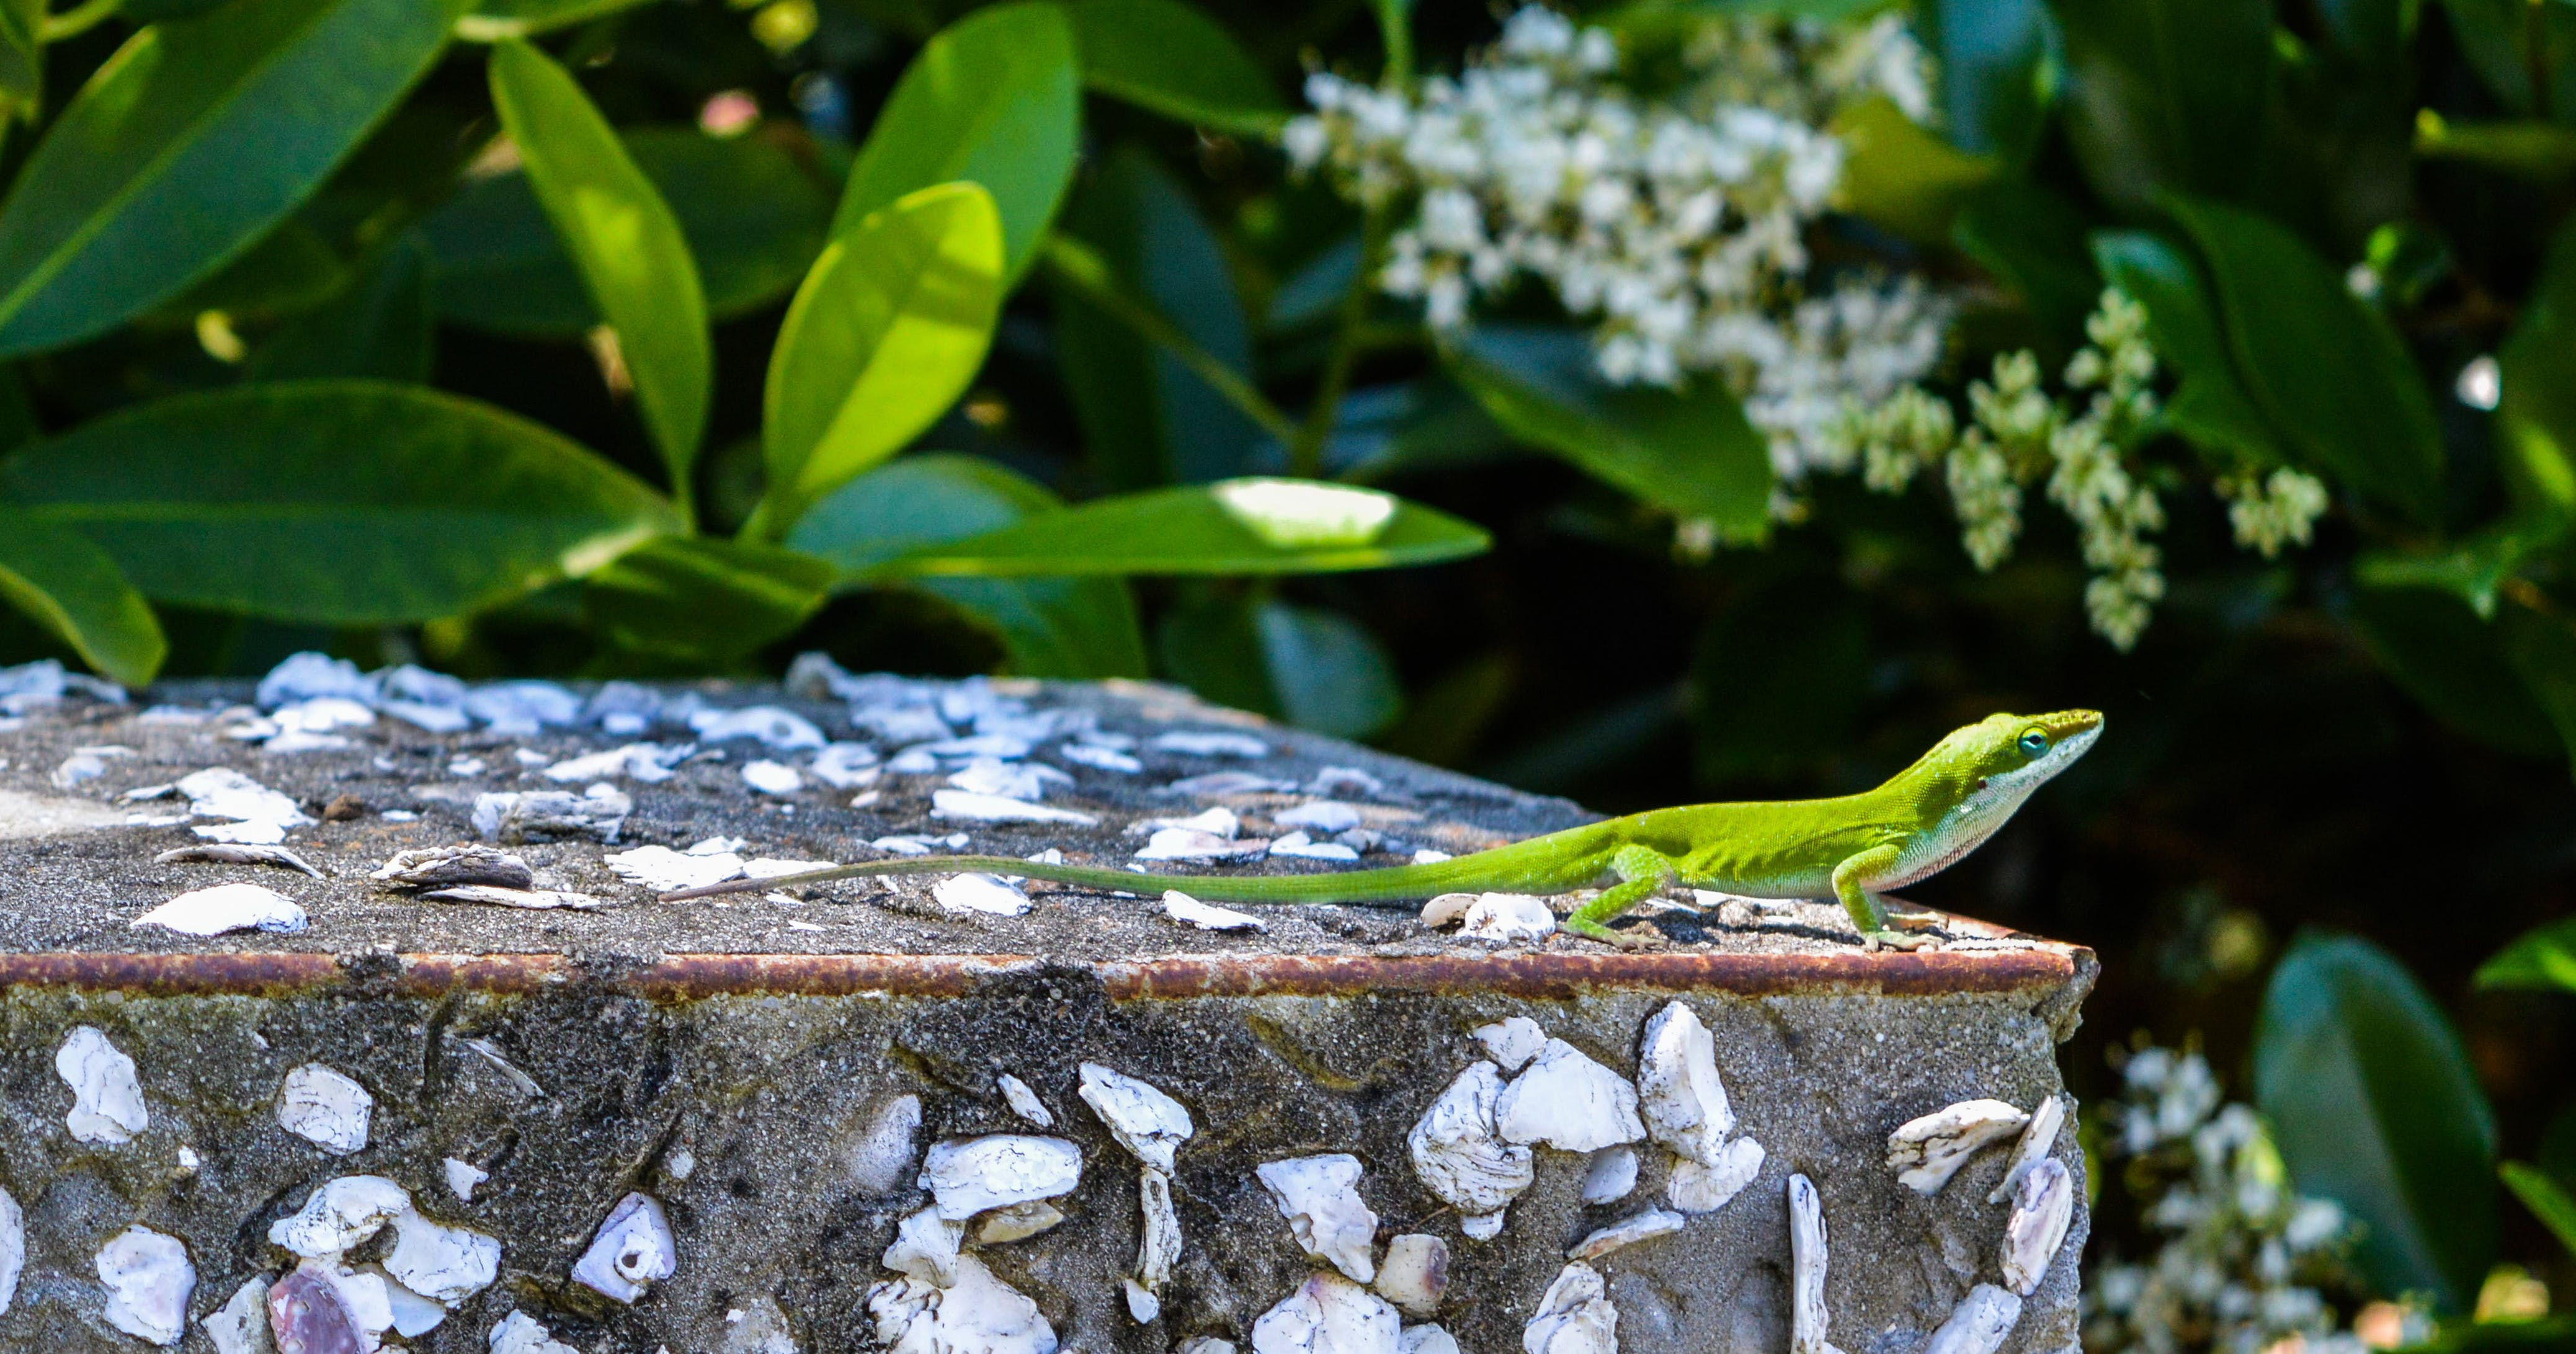 Green Lizard on Top of Gray Surface